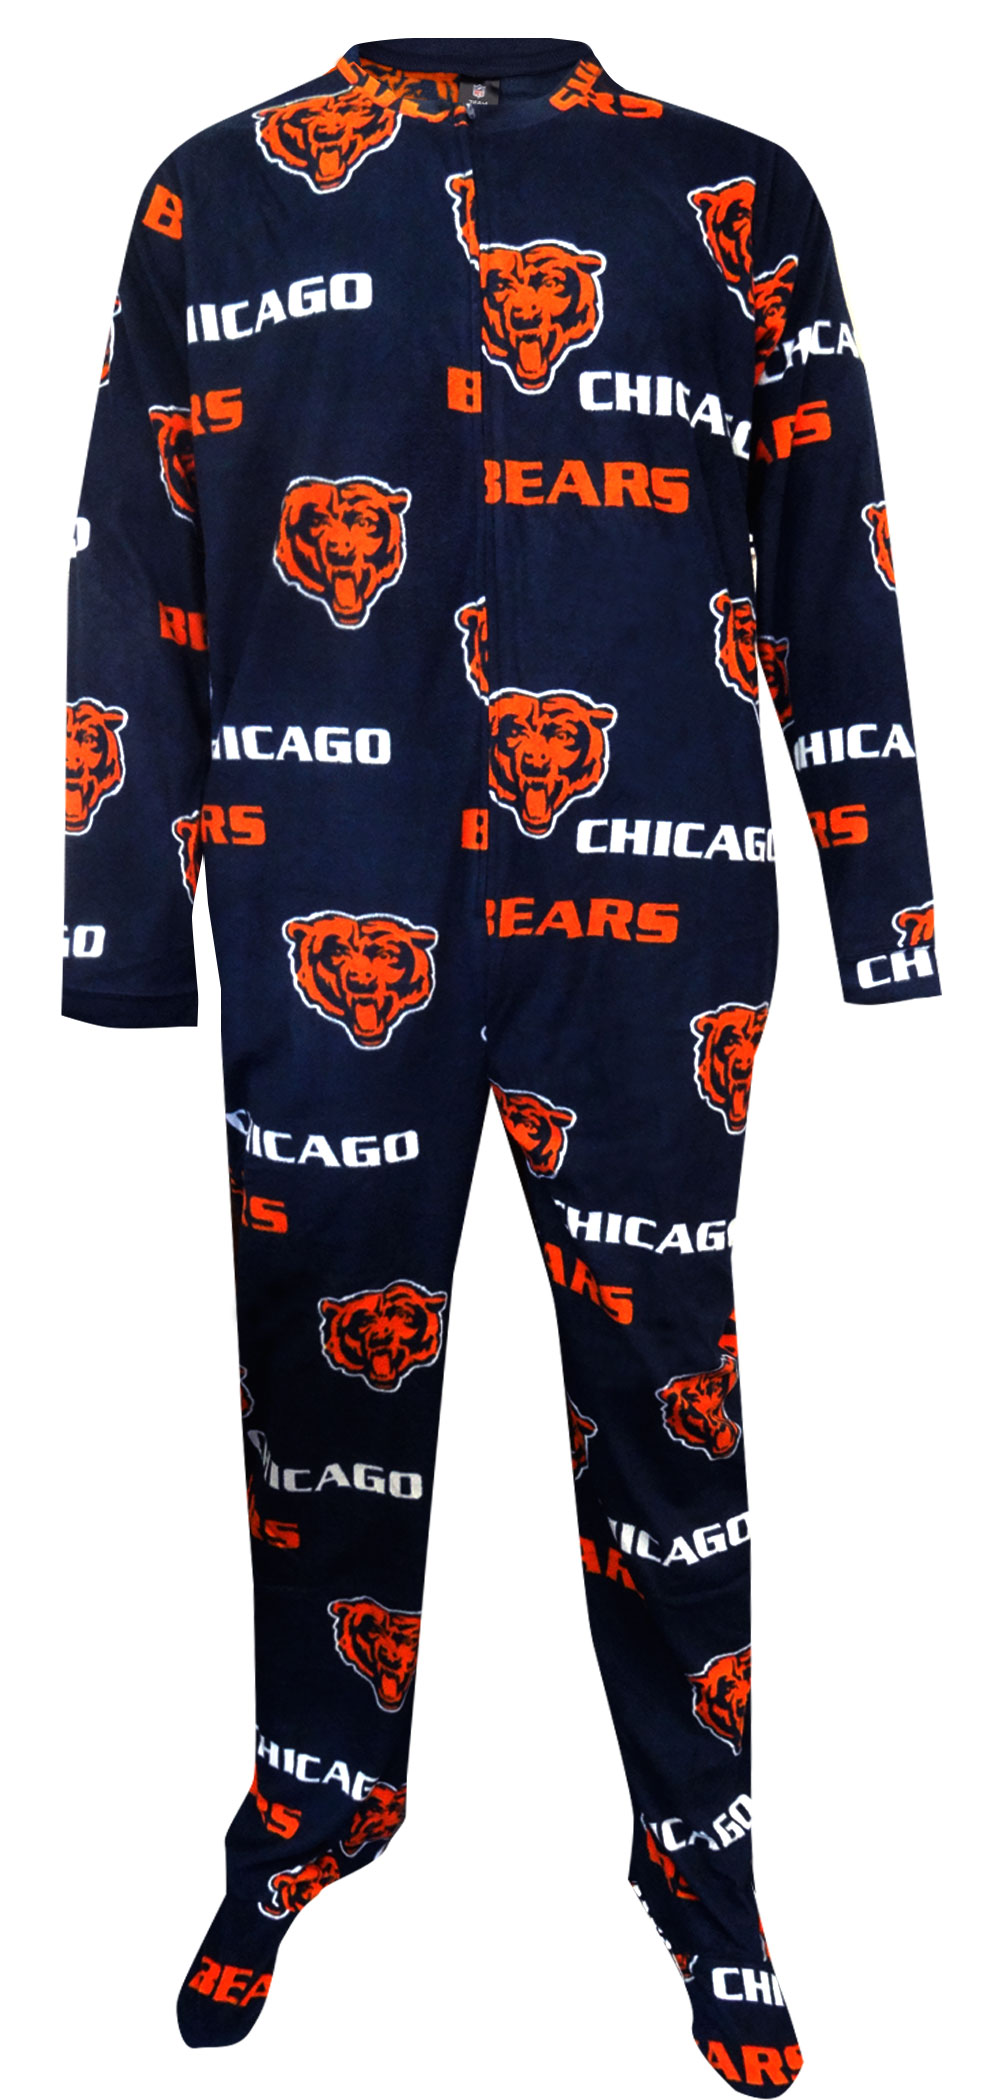 Image of Chicago Bears Guys Super Soft Fleece One Piece Footie Pajama for men